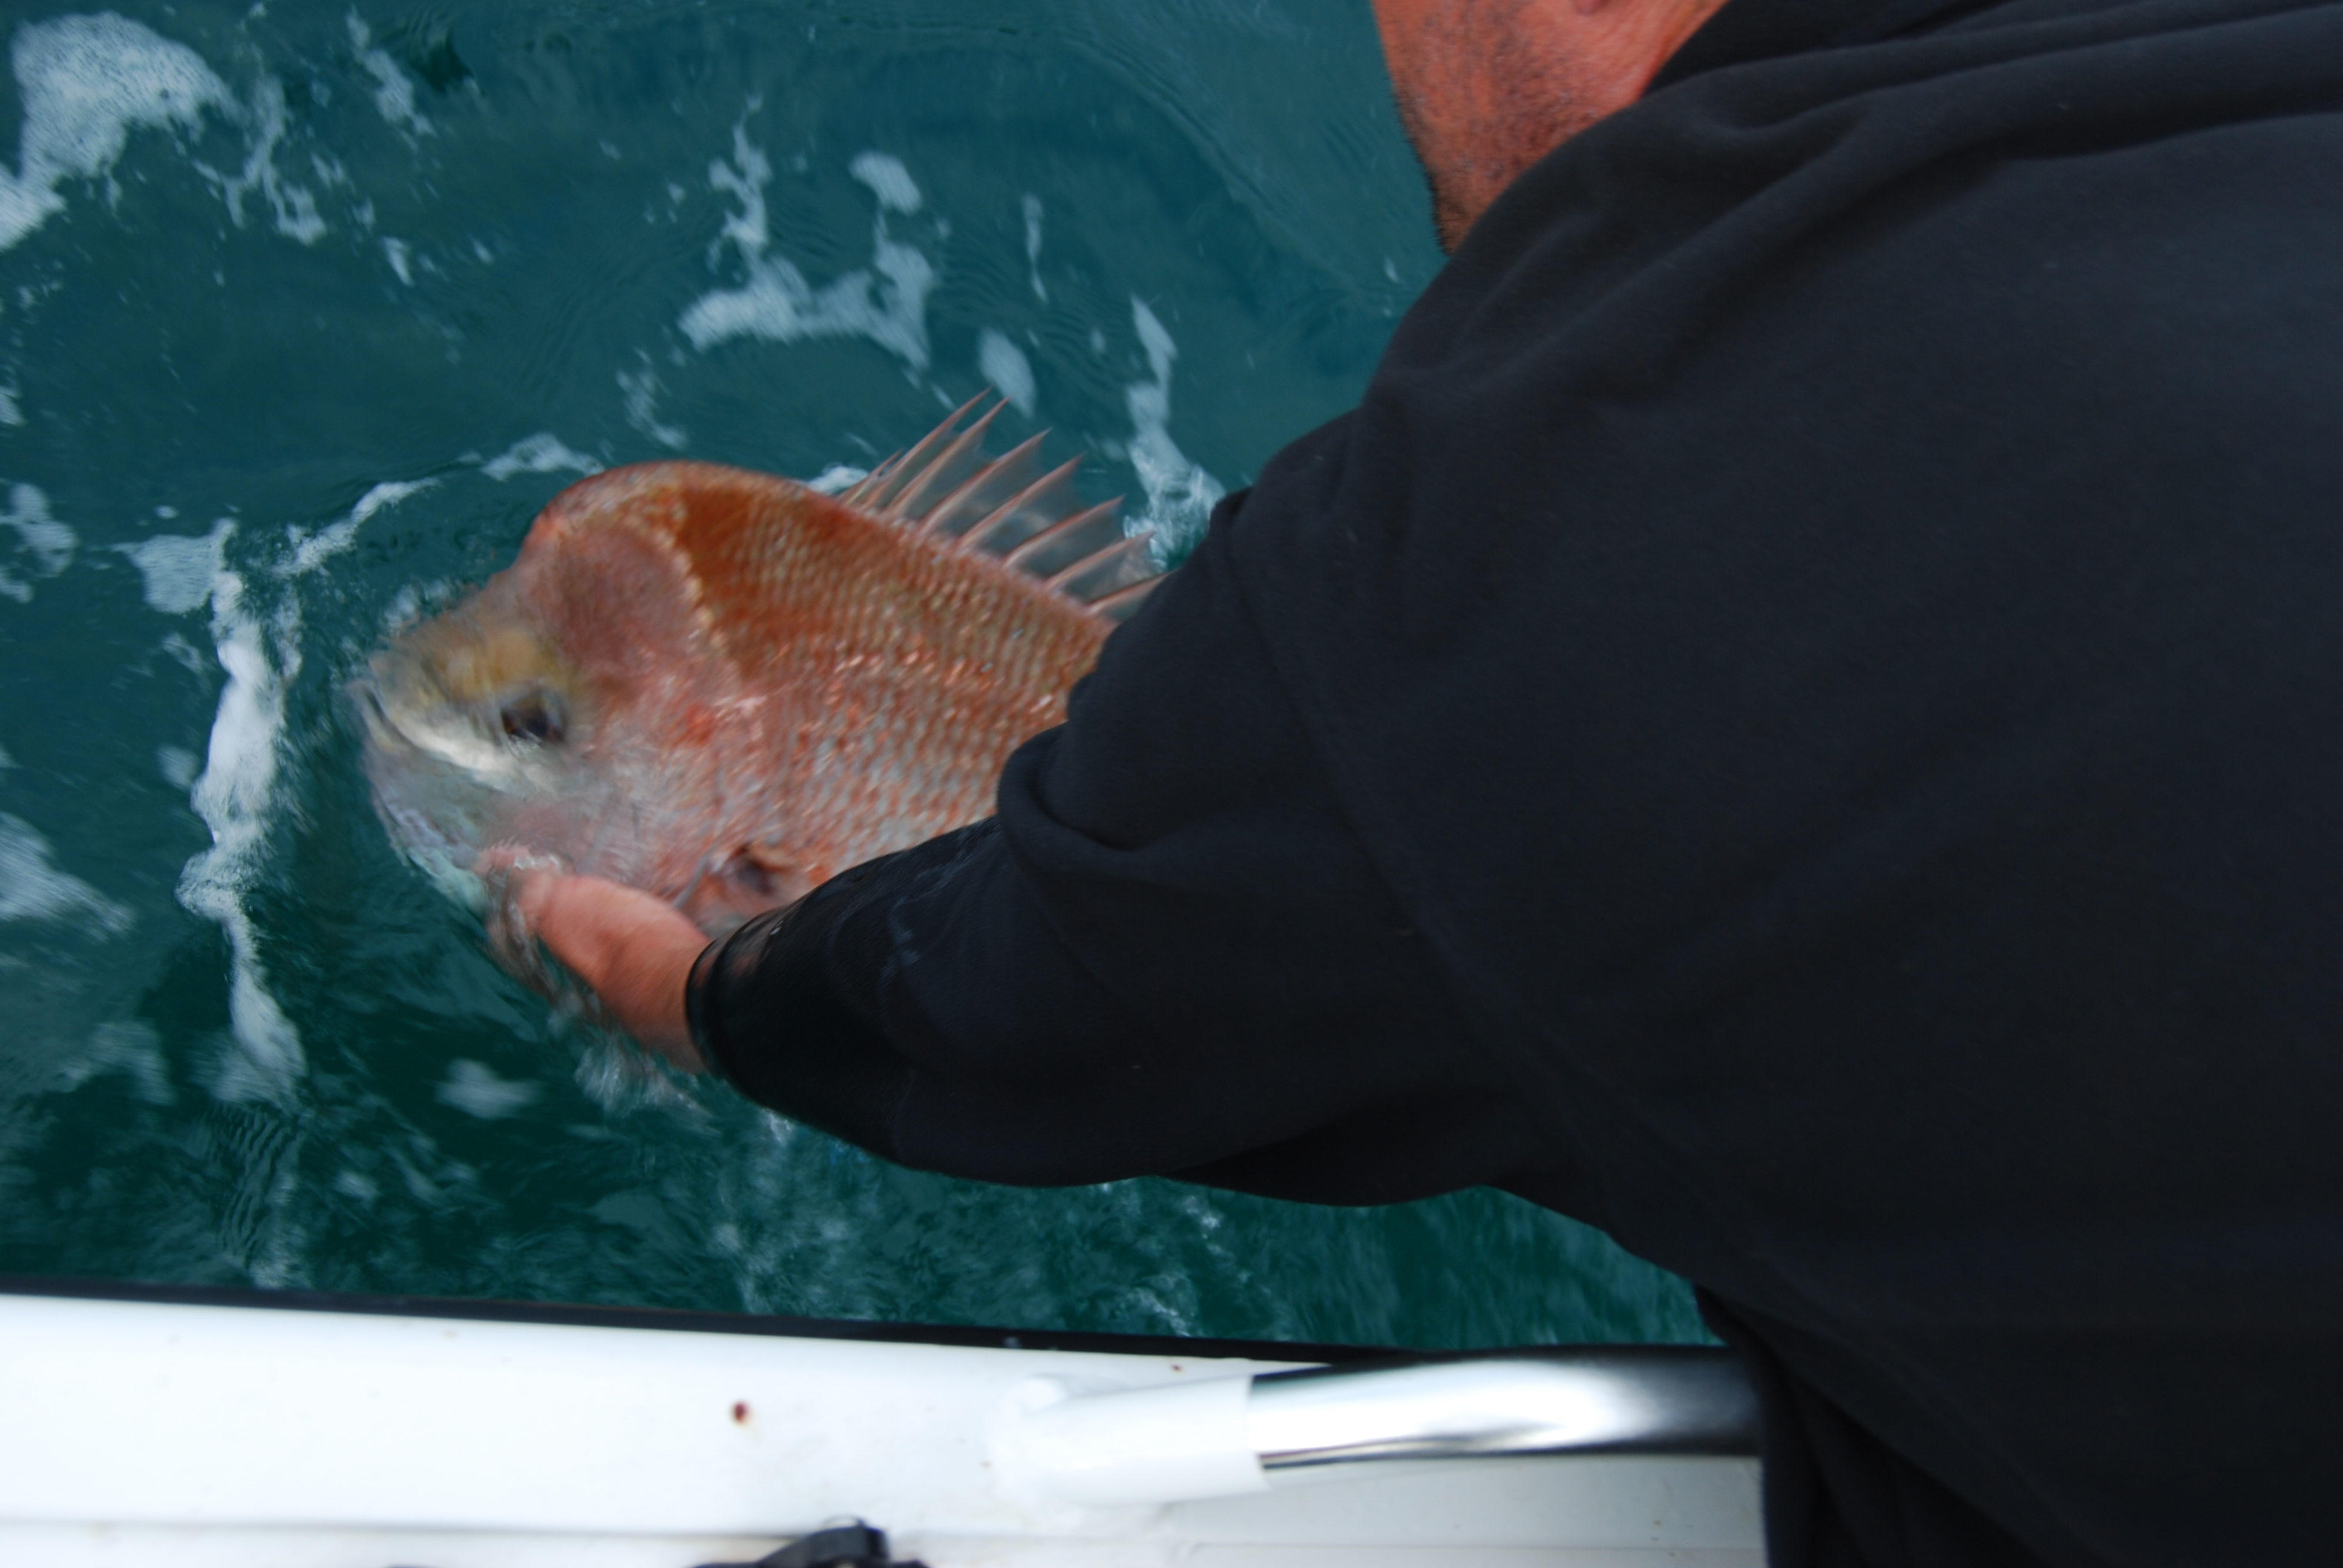 The author released a large breeding snapper.